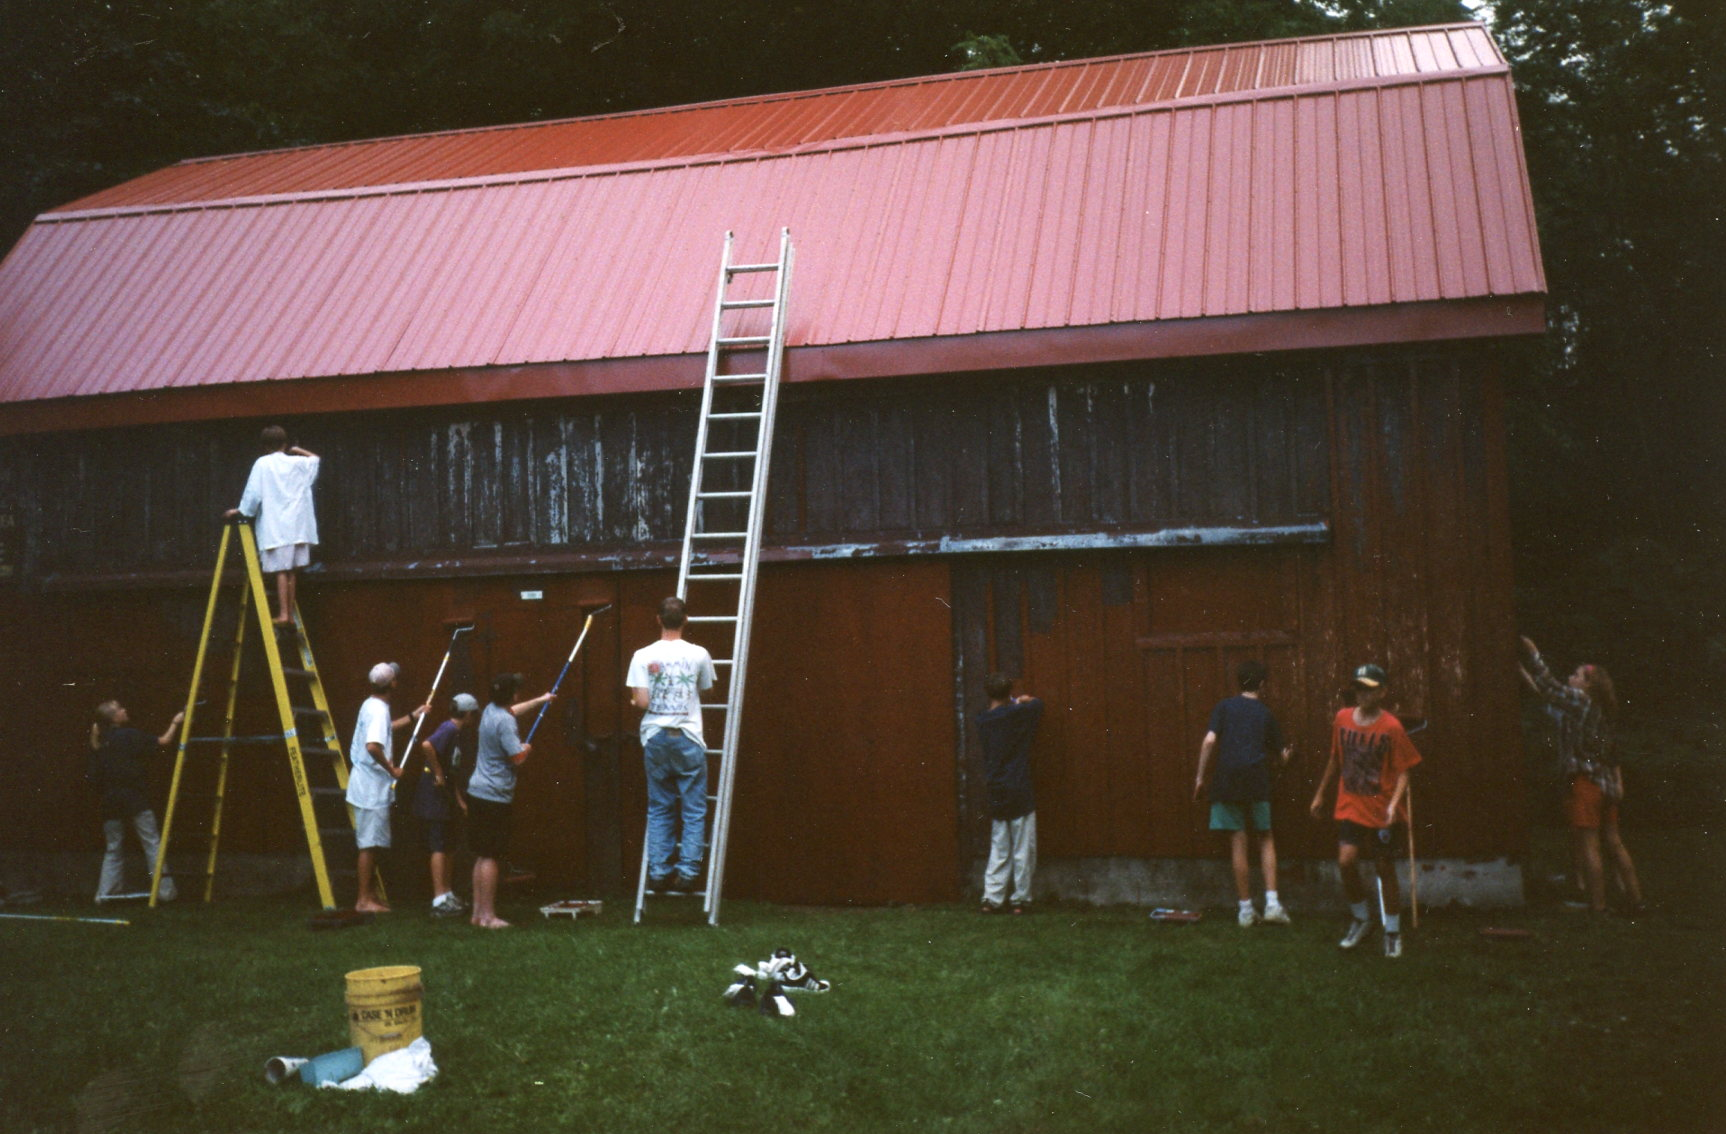 Volunteers hard at work putting fresh coat of paint on red barn in 2000.